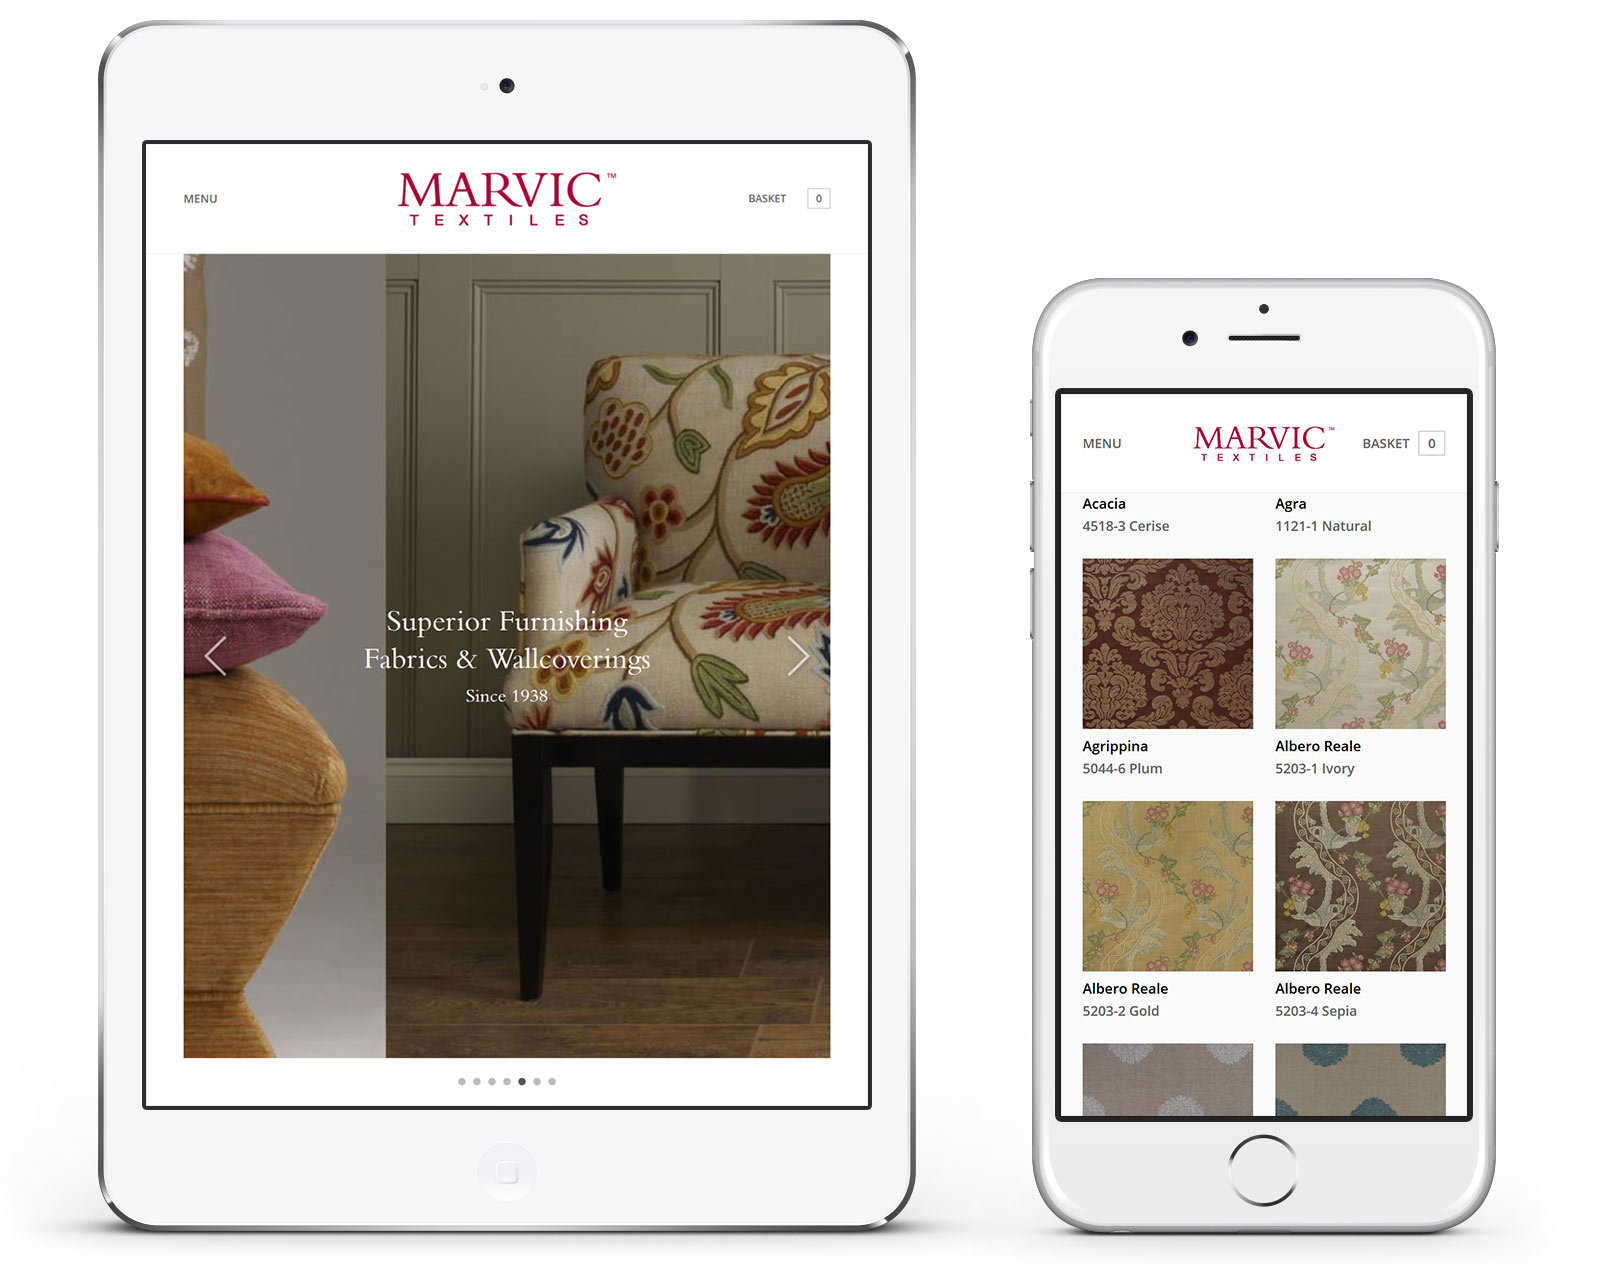 Marvic Textiles